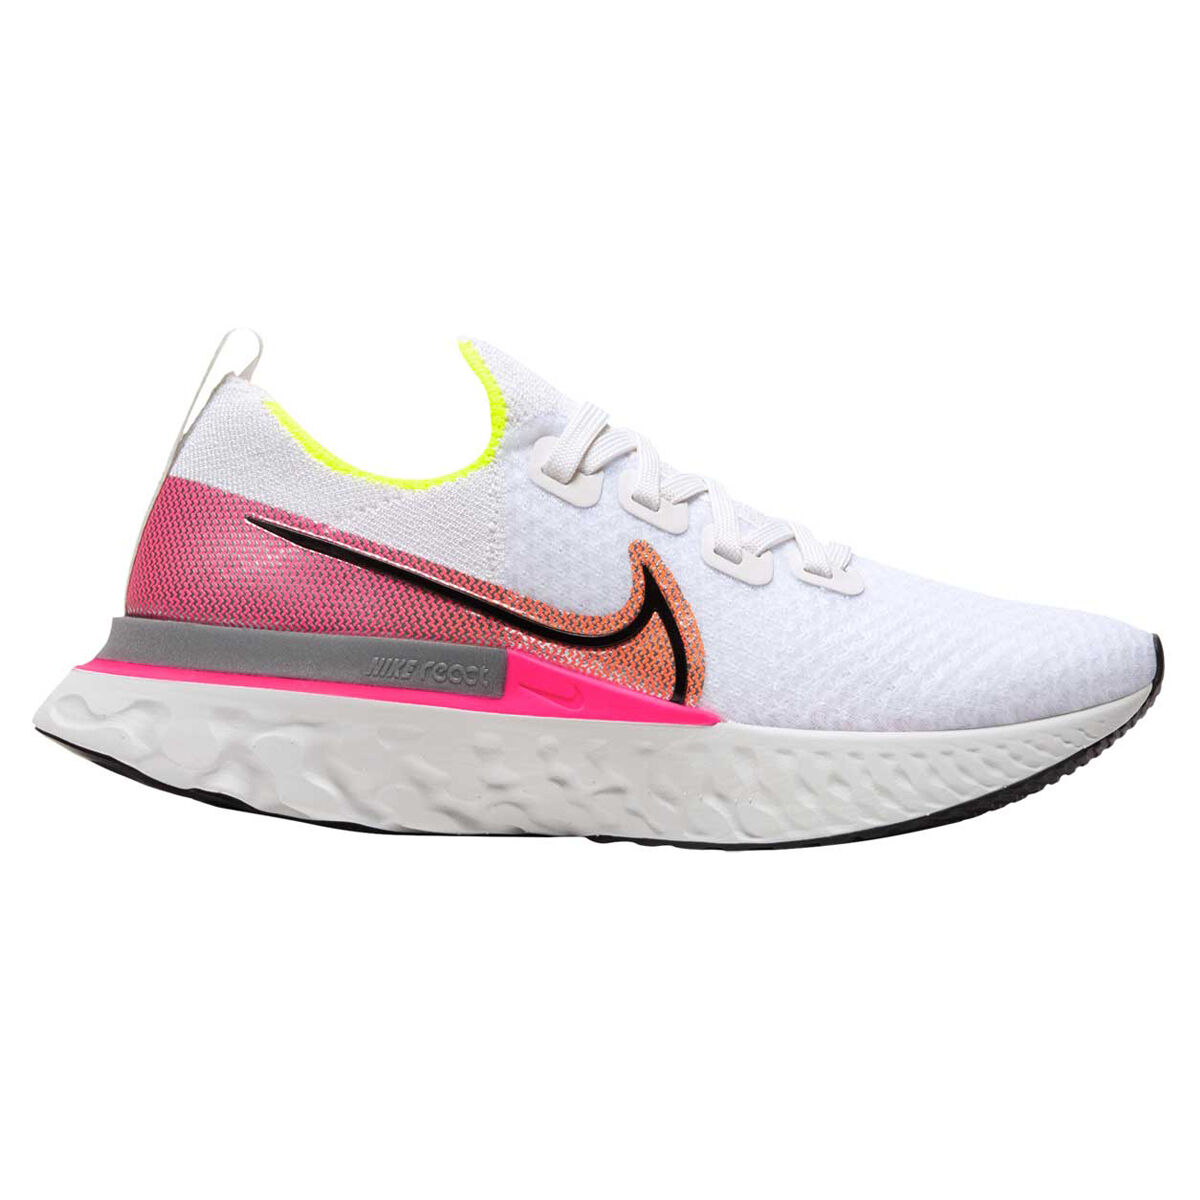 Nike React Infinity Run Flyknit Womens Running Shoes